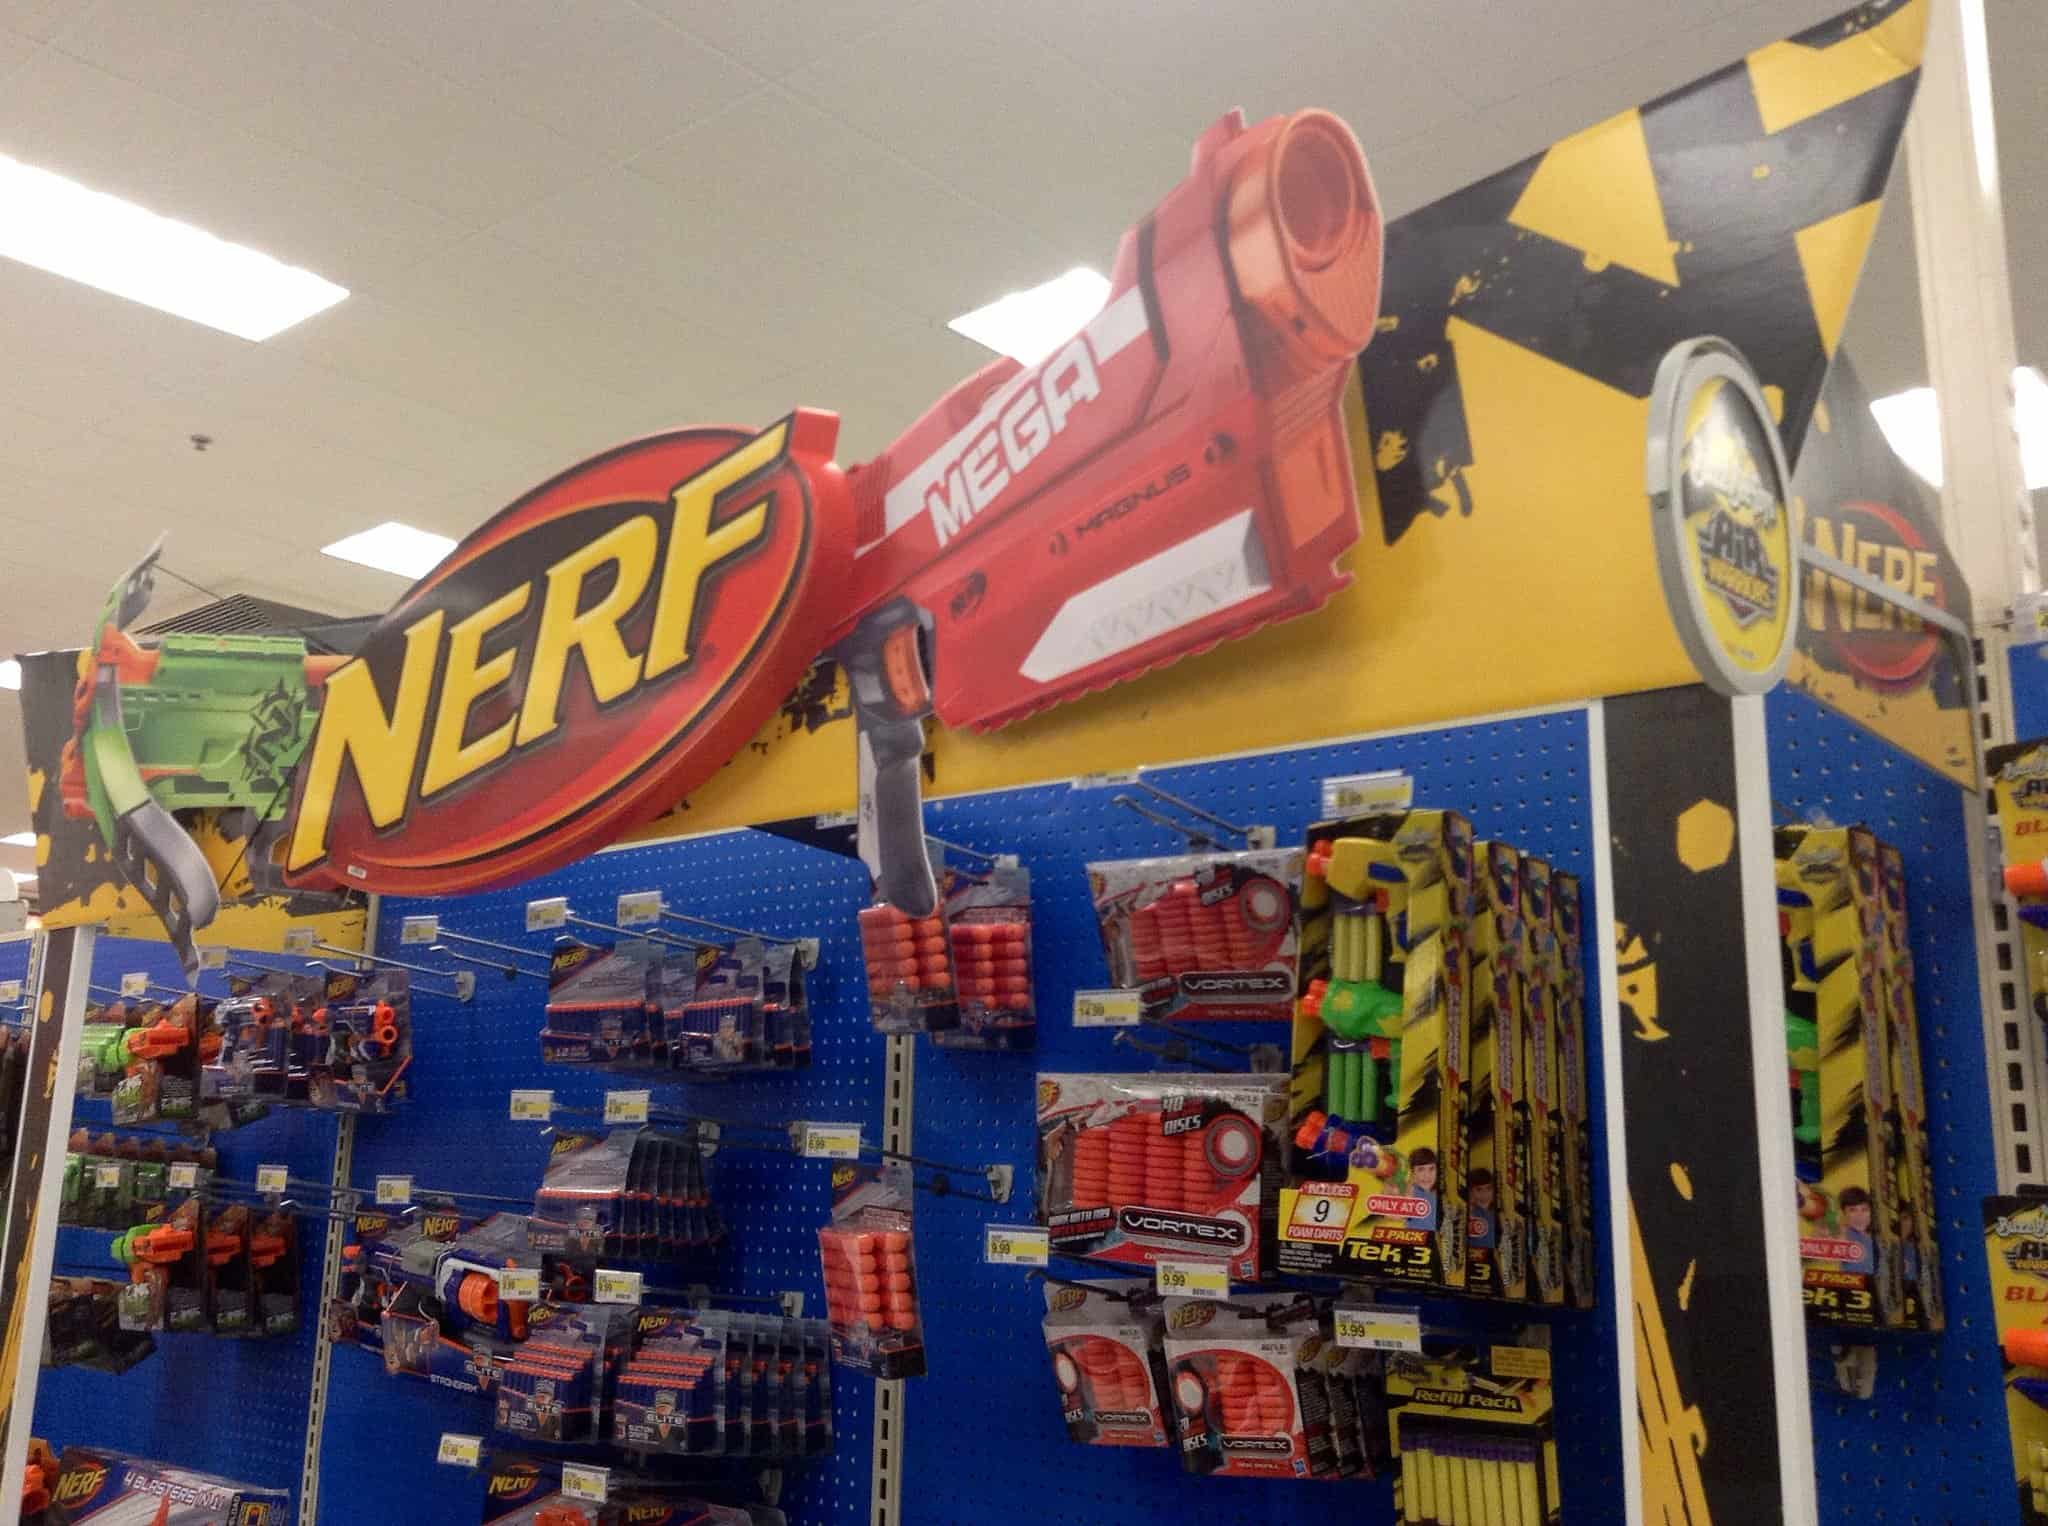 10 Types of Nerf Blasters That You Can Purchase Right Now